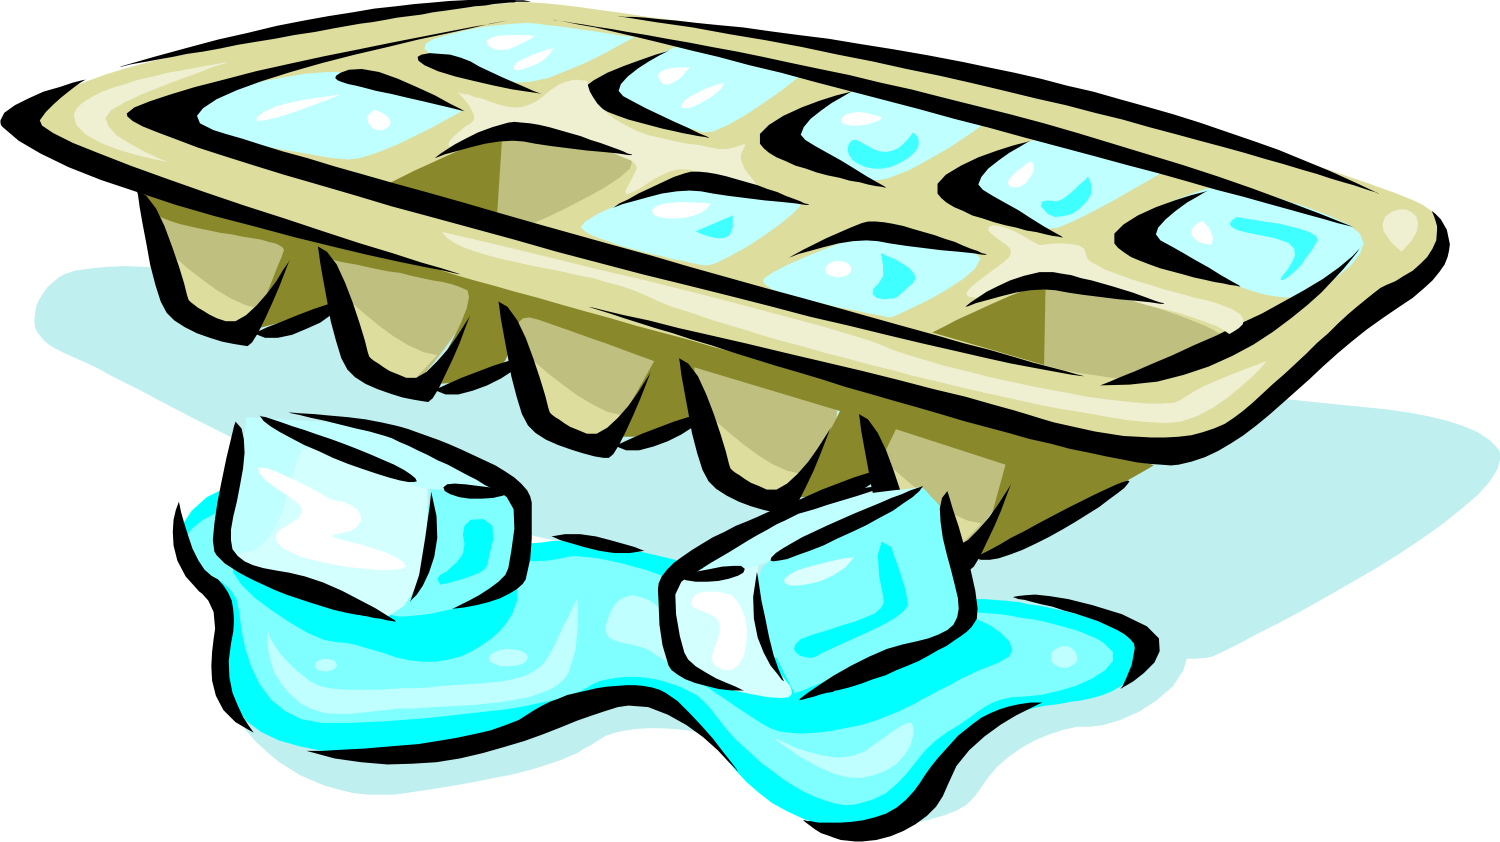 Ice clipart ice tray. Displaying gt images for